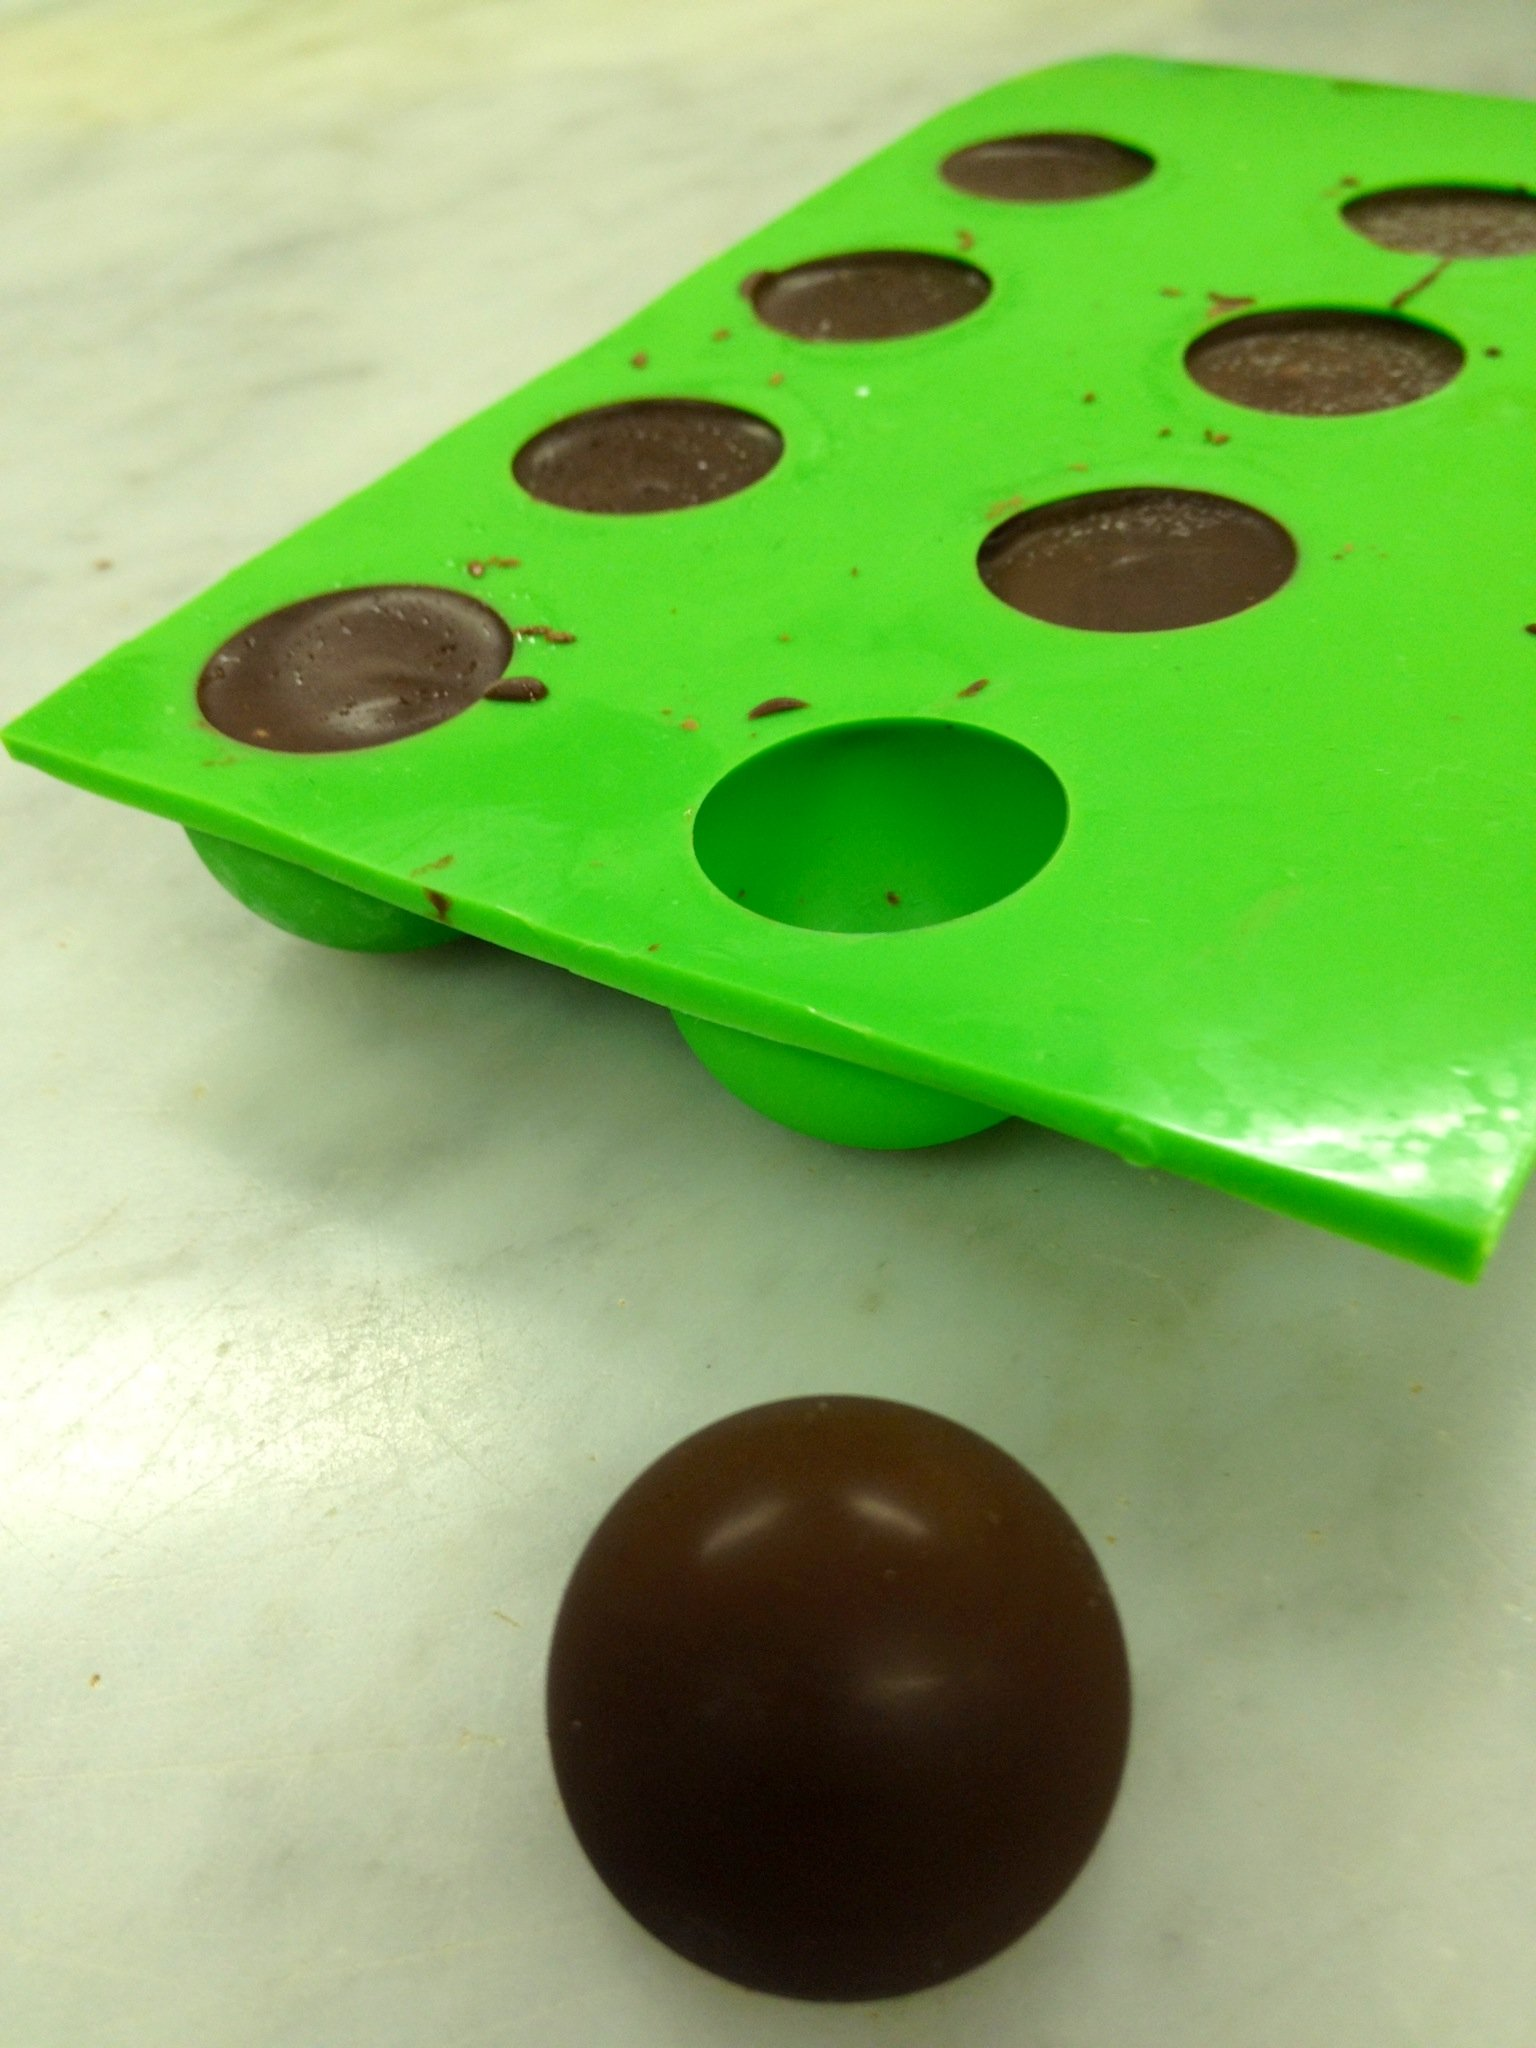 Truffly Made Round Silicone Mold for Chocolate Truffles, Ganache, Jelly, Pralines and Caramels by Truffly Made (Image #4)